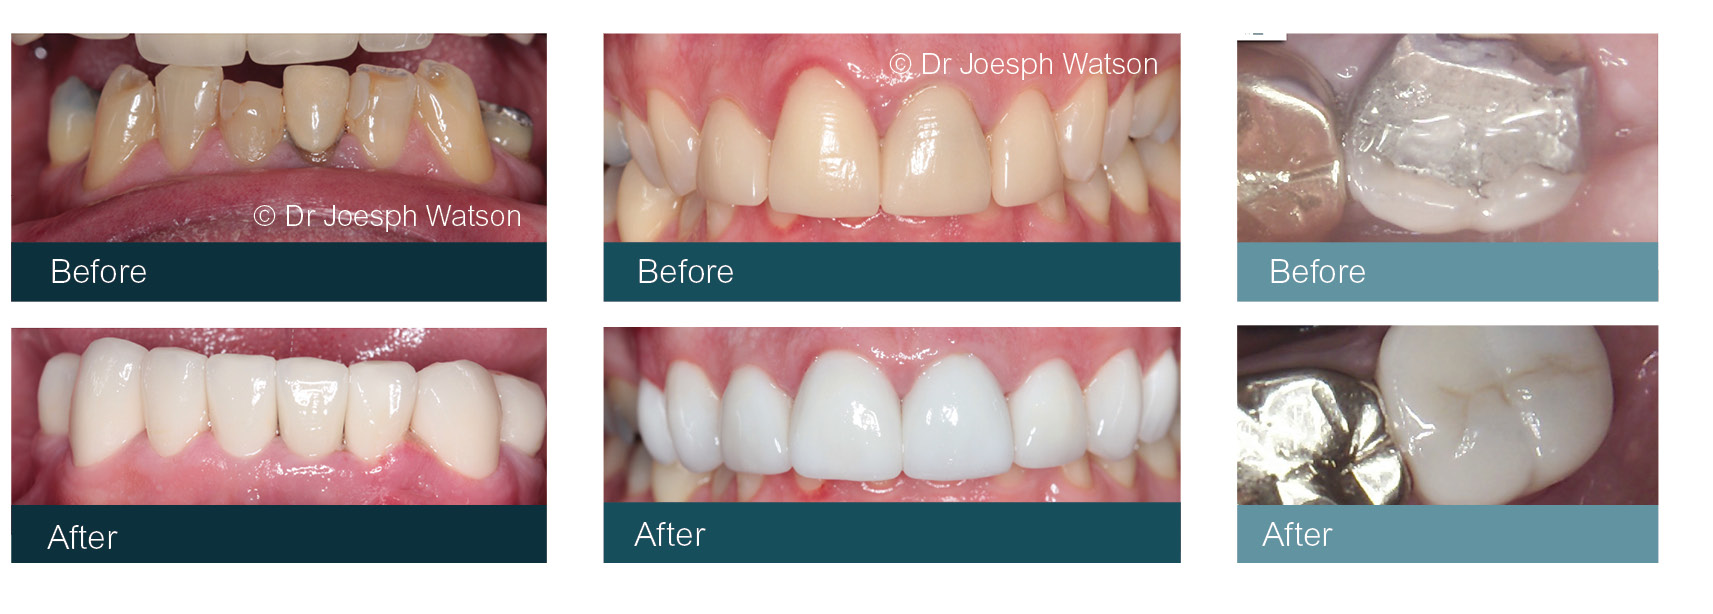 Cosmetic Dentist Crowns Glasgow